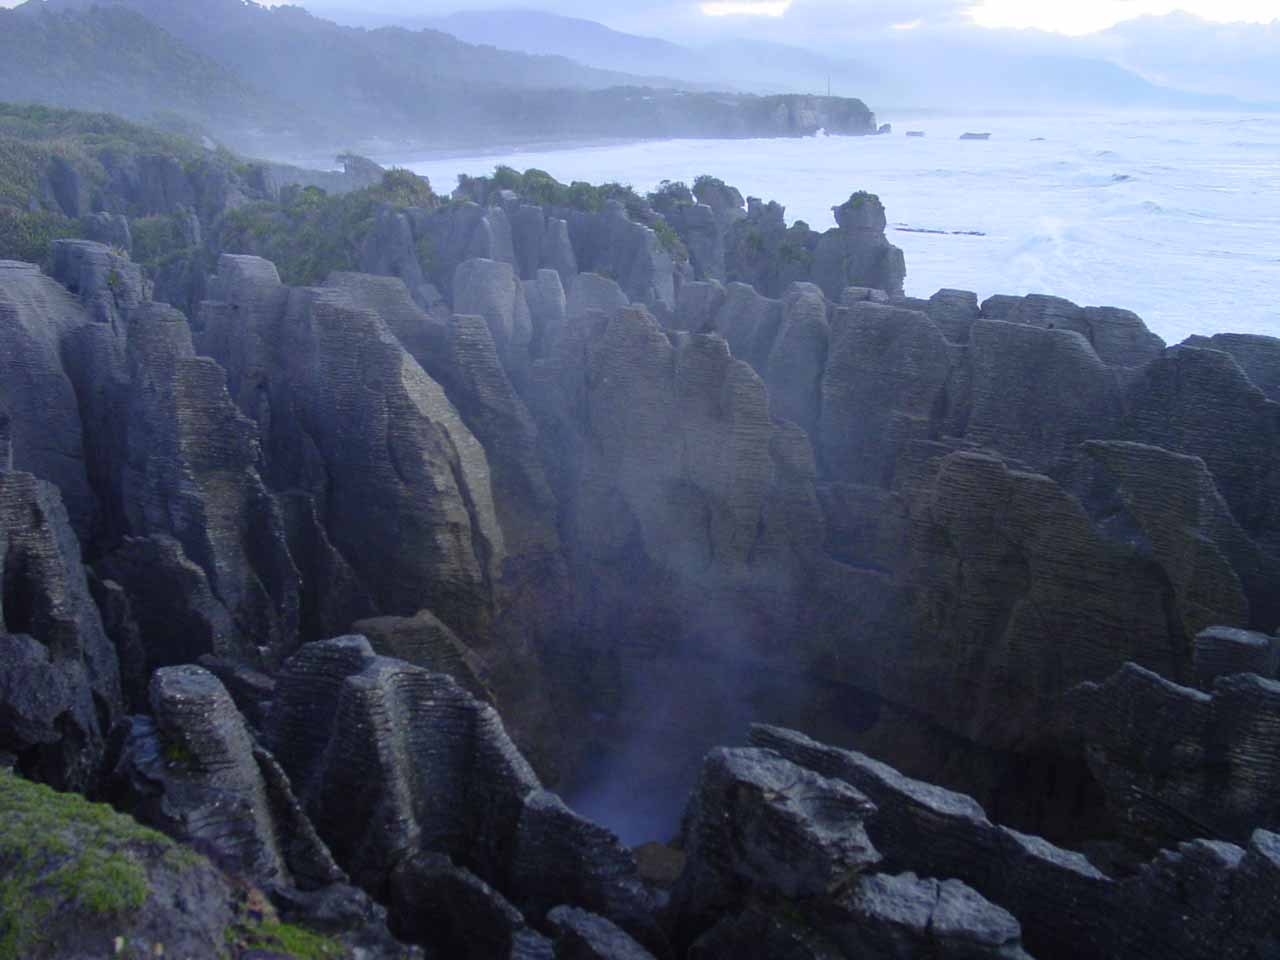 About 61km north of the Kumara Junction on the SH6 was the Pancake Rocks at Punakaiki